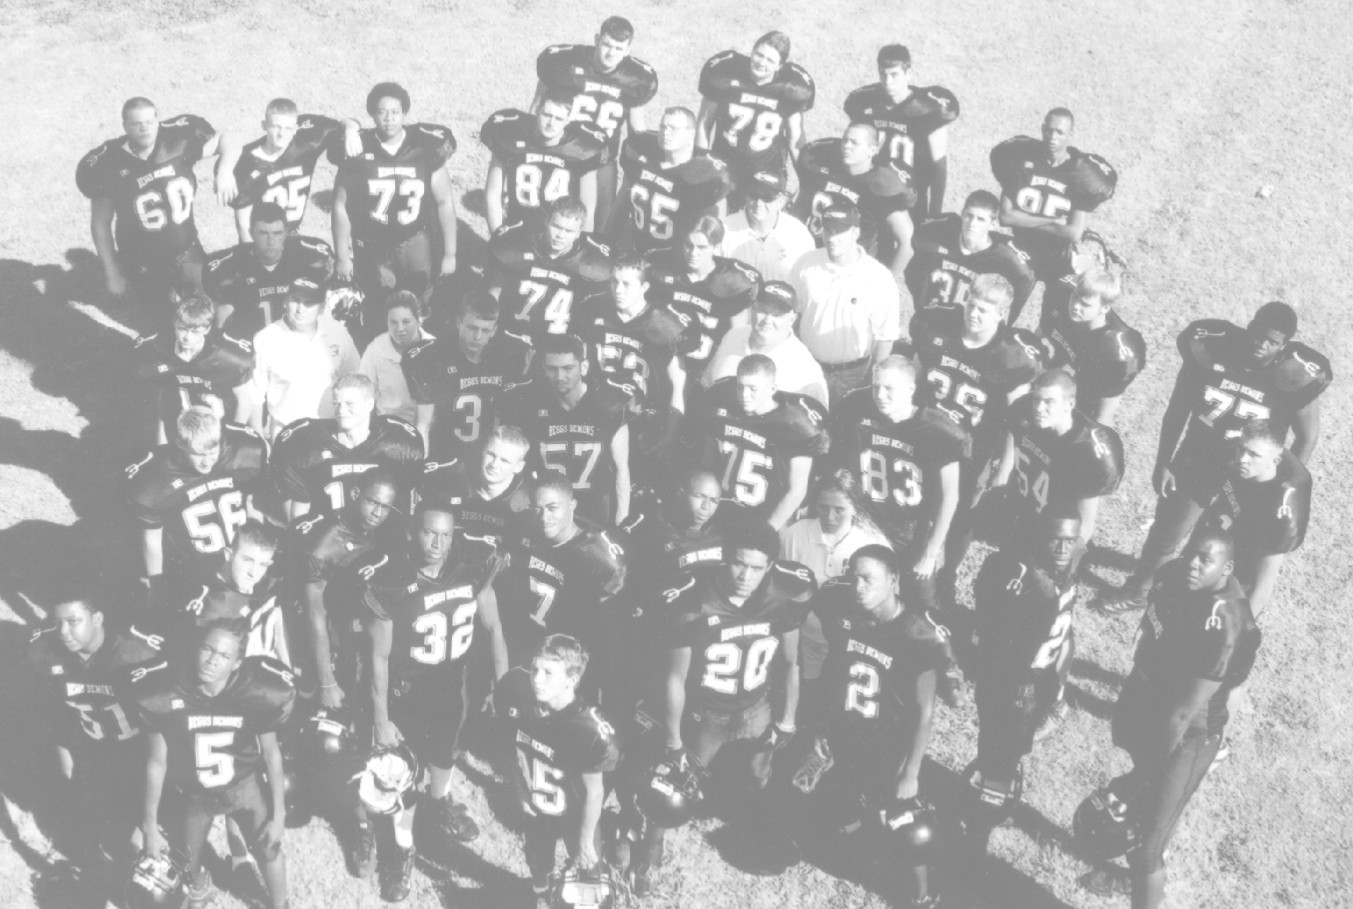 team_picture_black_and_white.jpg